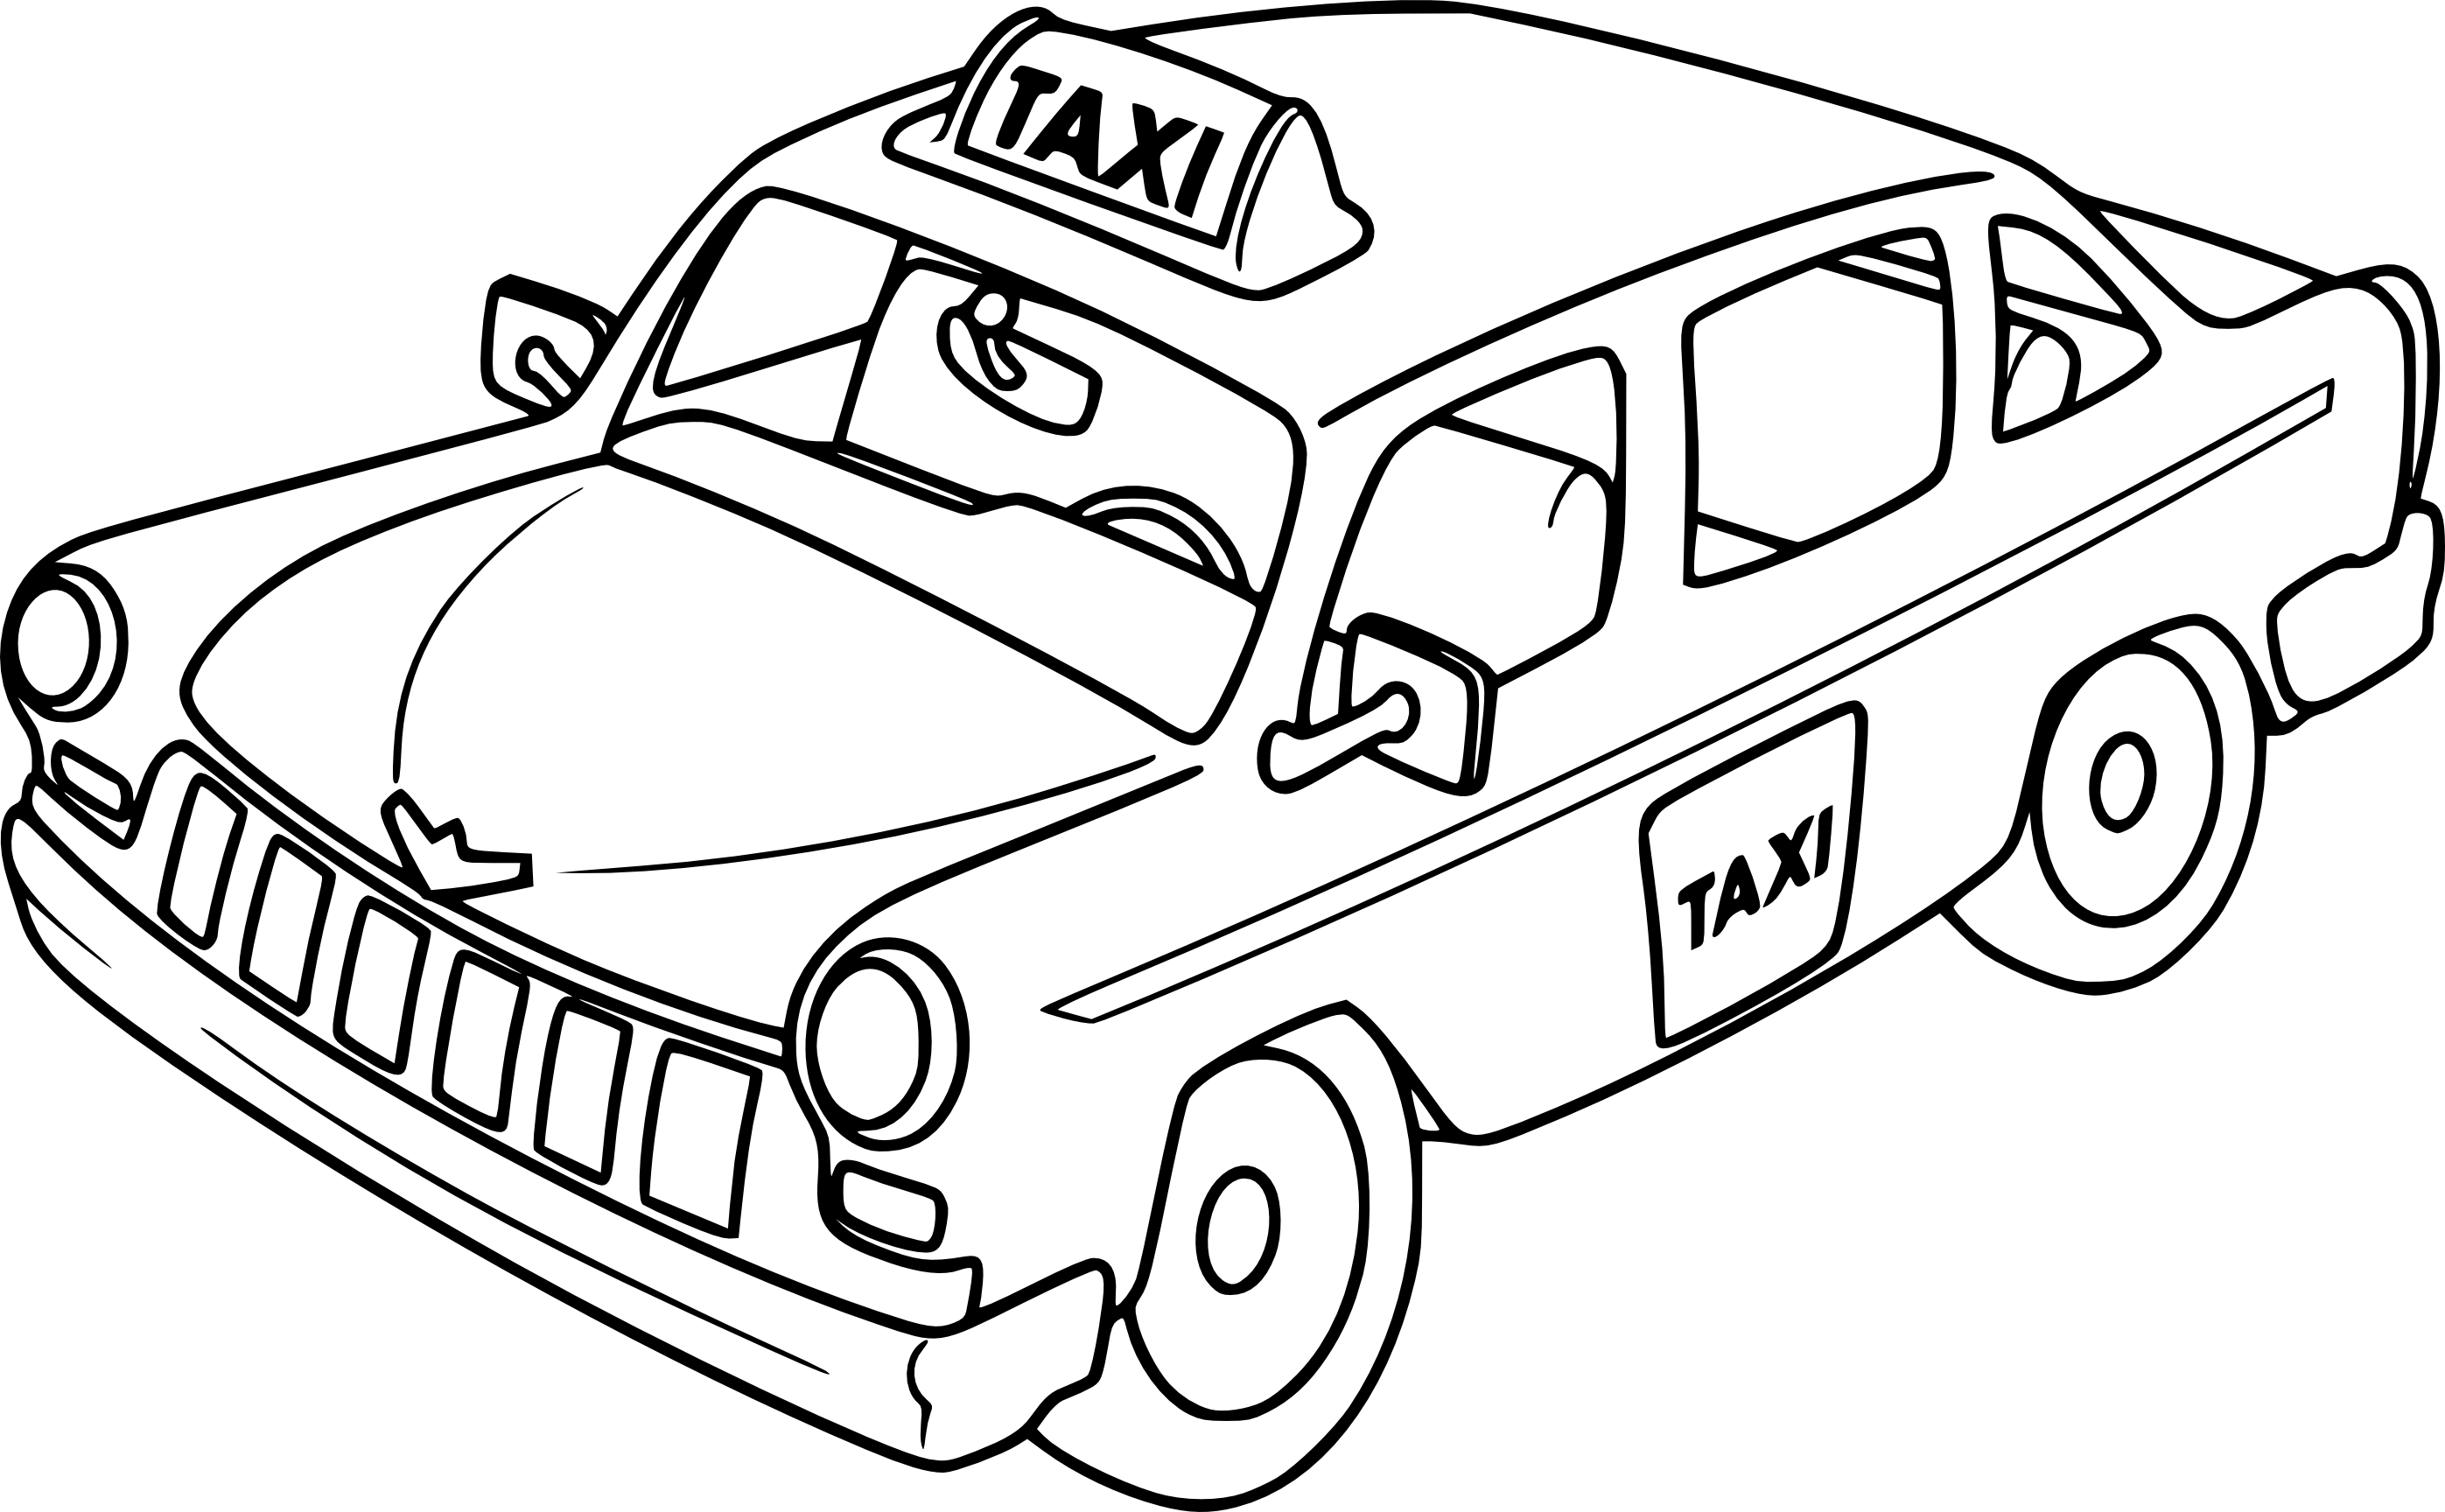 Taxi clipart black and white 10 » Clipart Station.